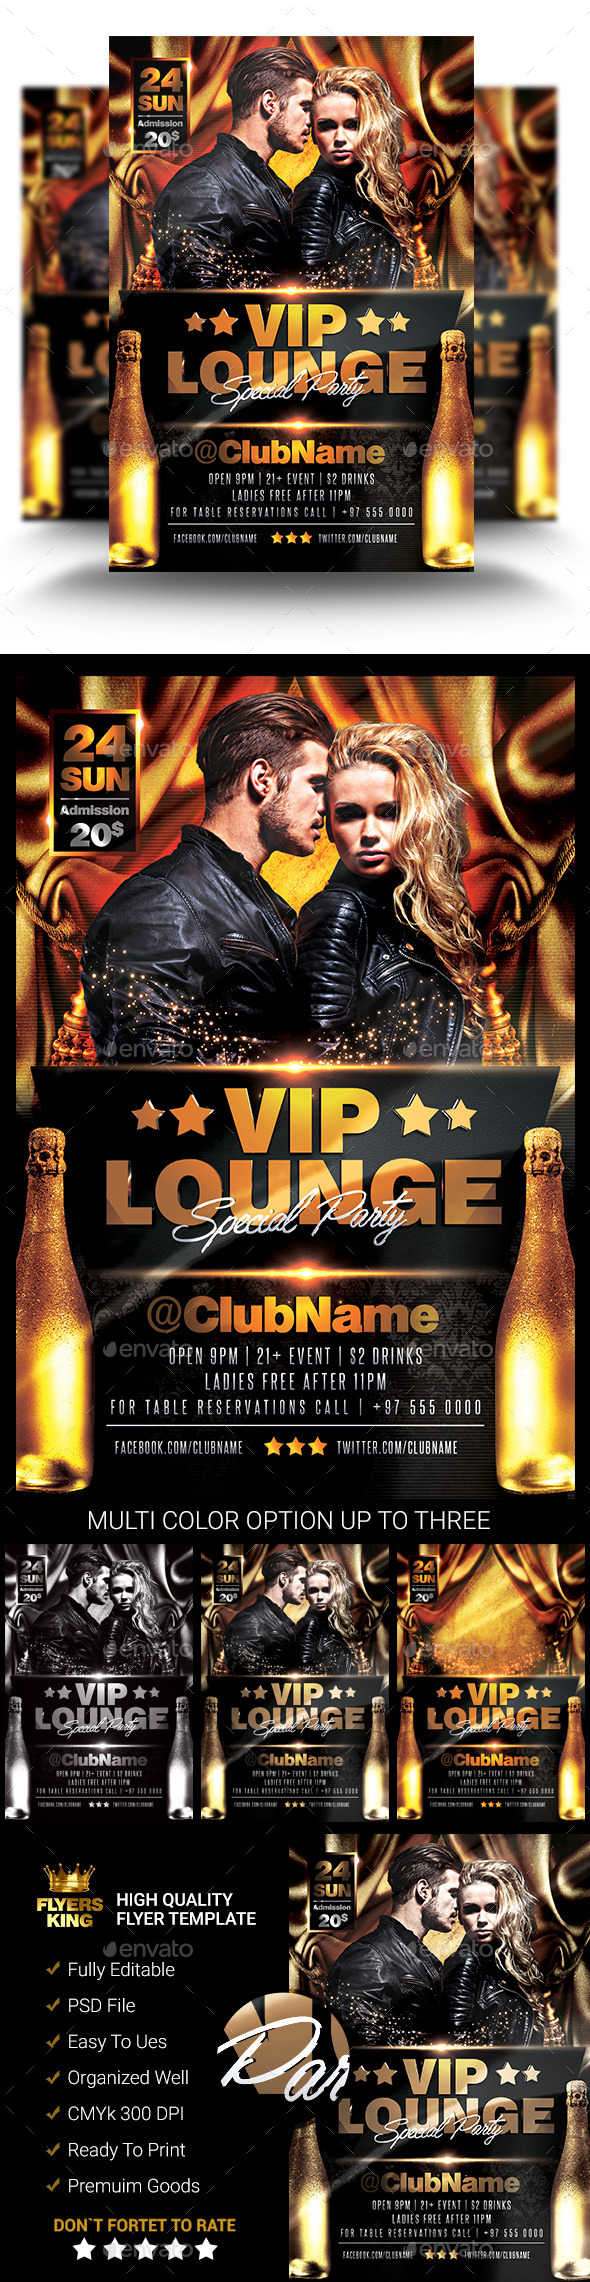 GraphicRiver Vip Lounge Party Flyer 11379448